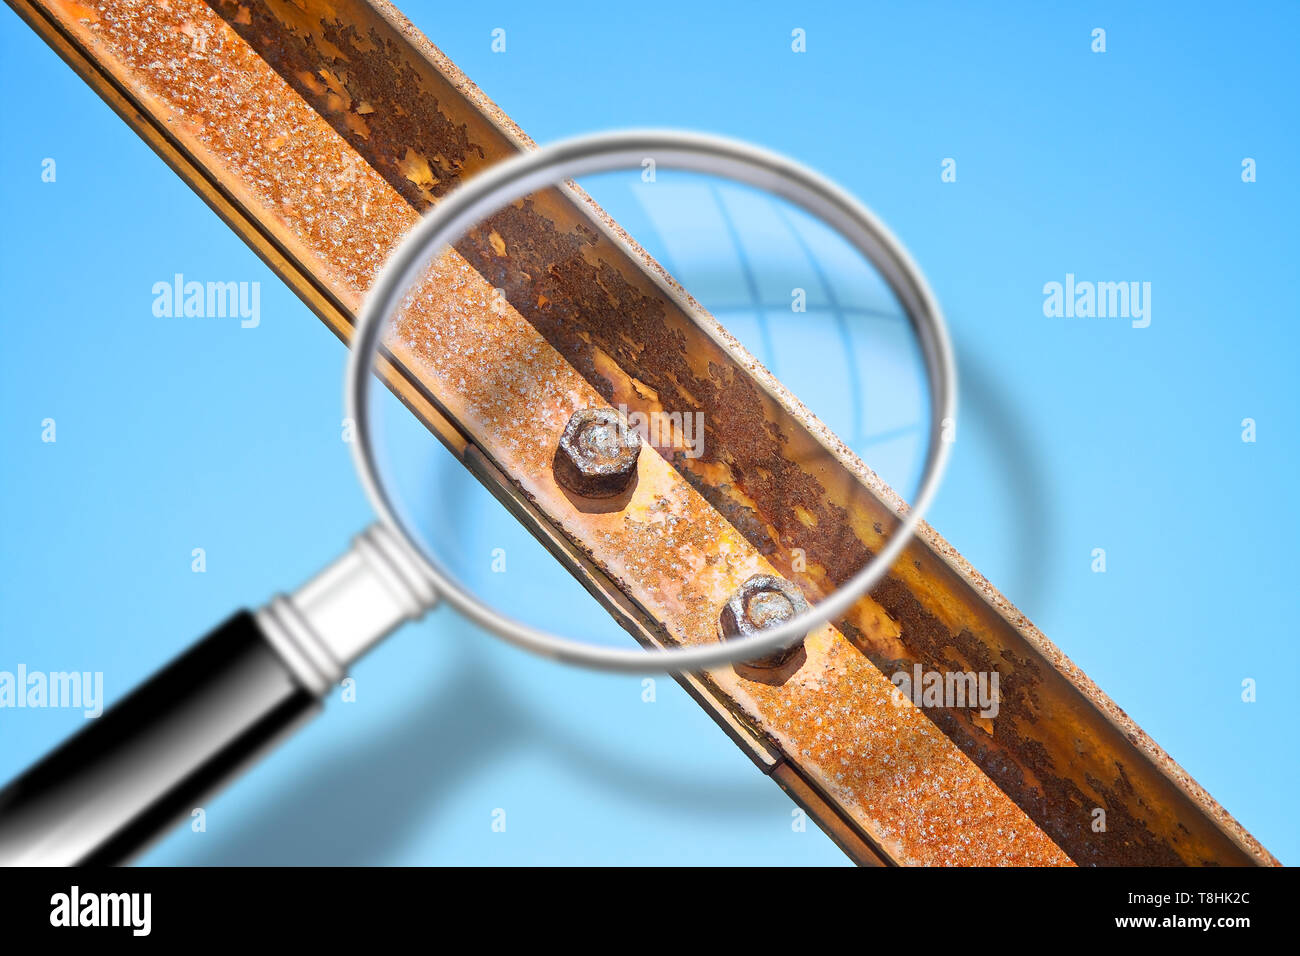 Old rusty iron structure with bolted metal profiles against a blue sky - Concept image seen through a magnifying glass - Stock Image